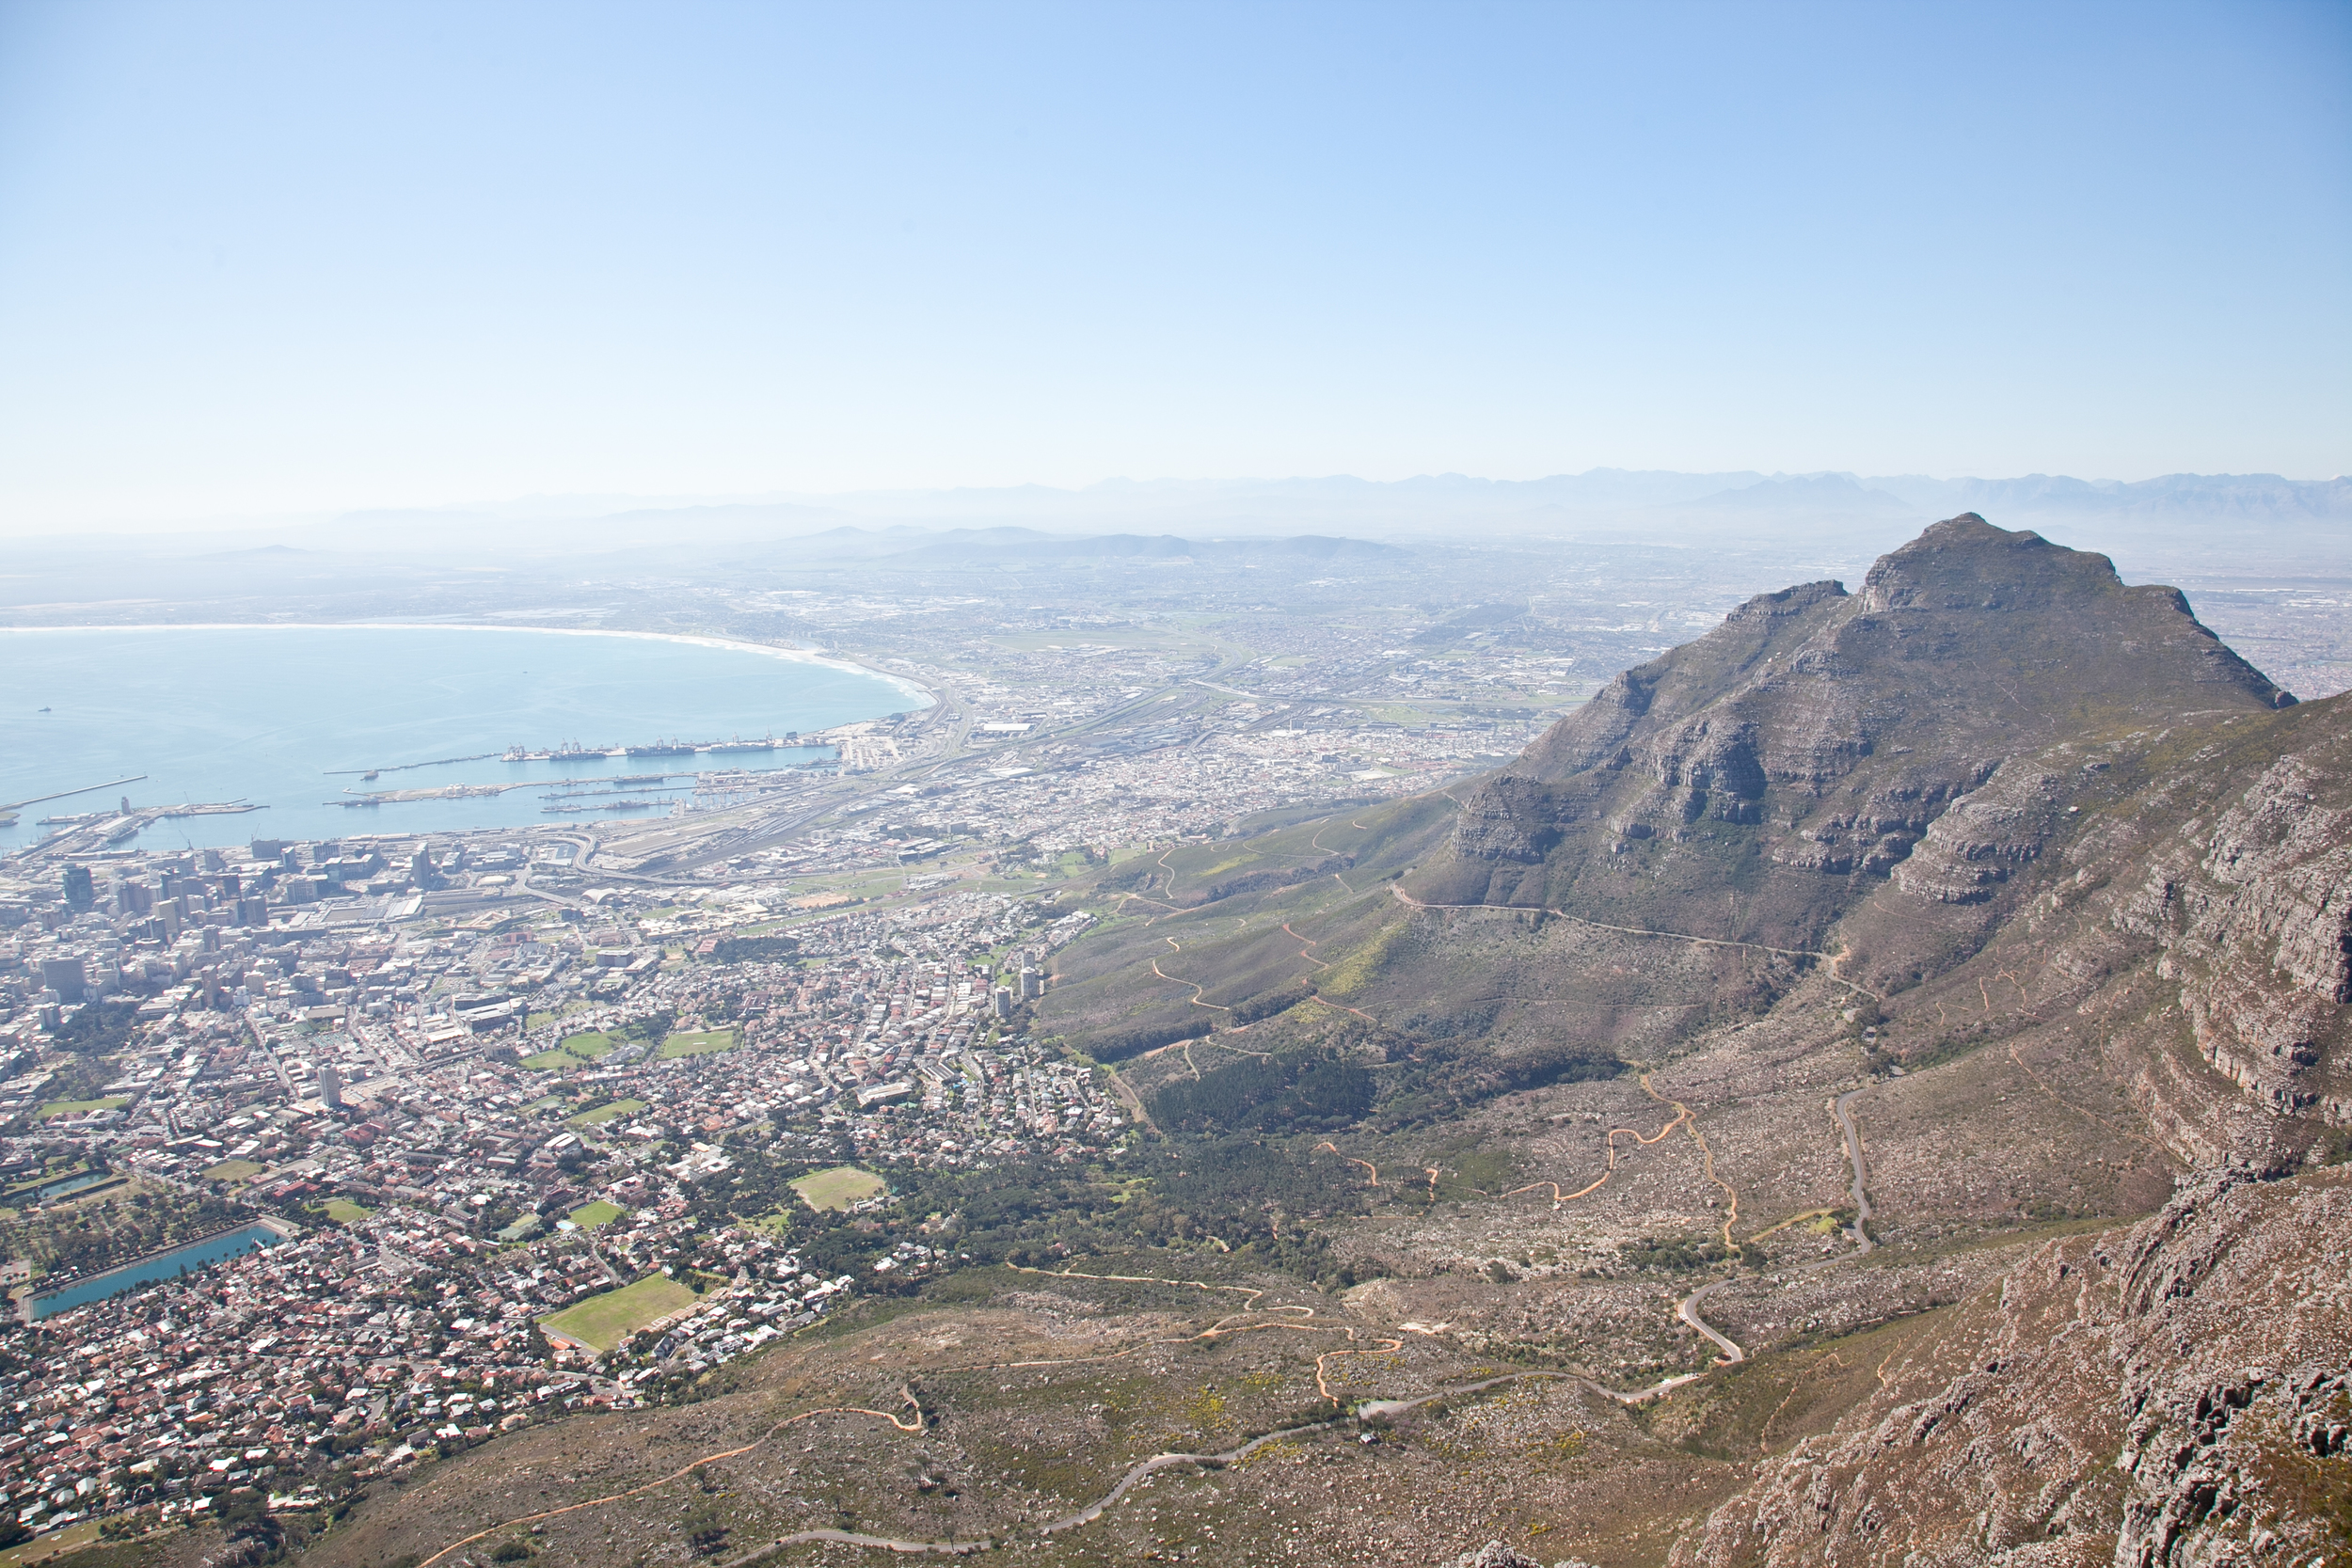 IMG_4711-table-mountain-cape-town-south-africa-trisa-taro.jpg